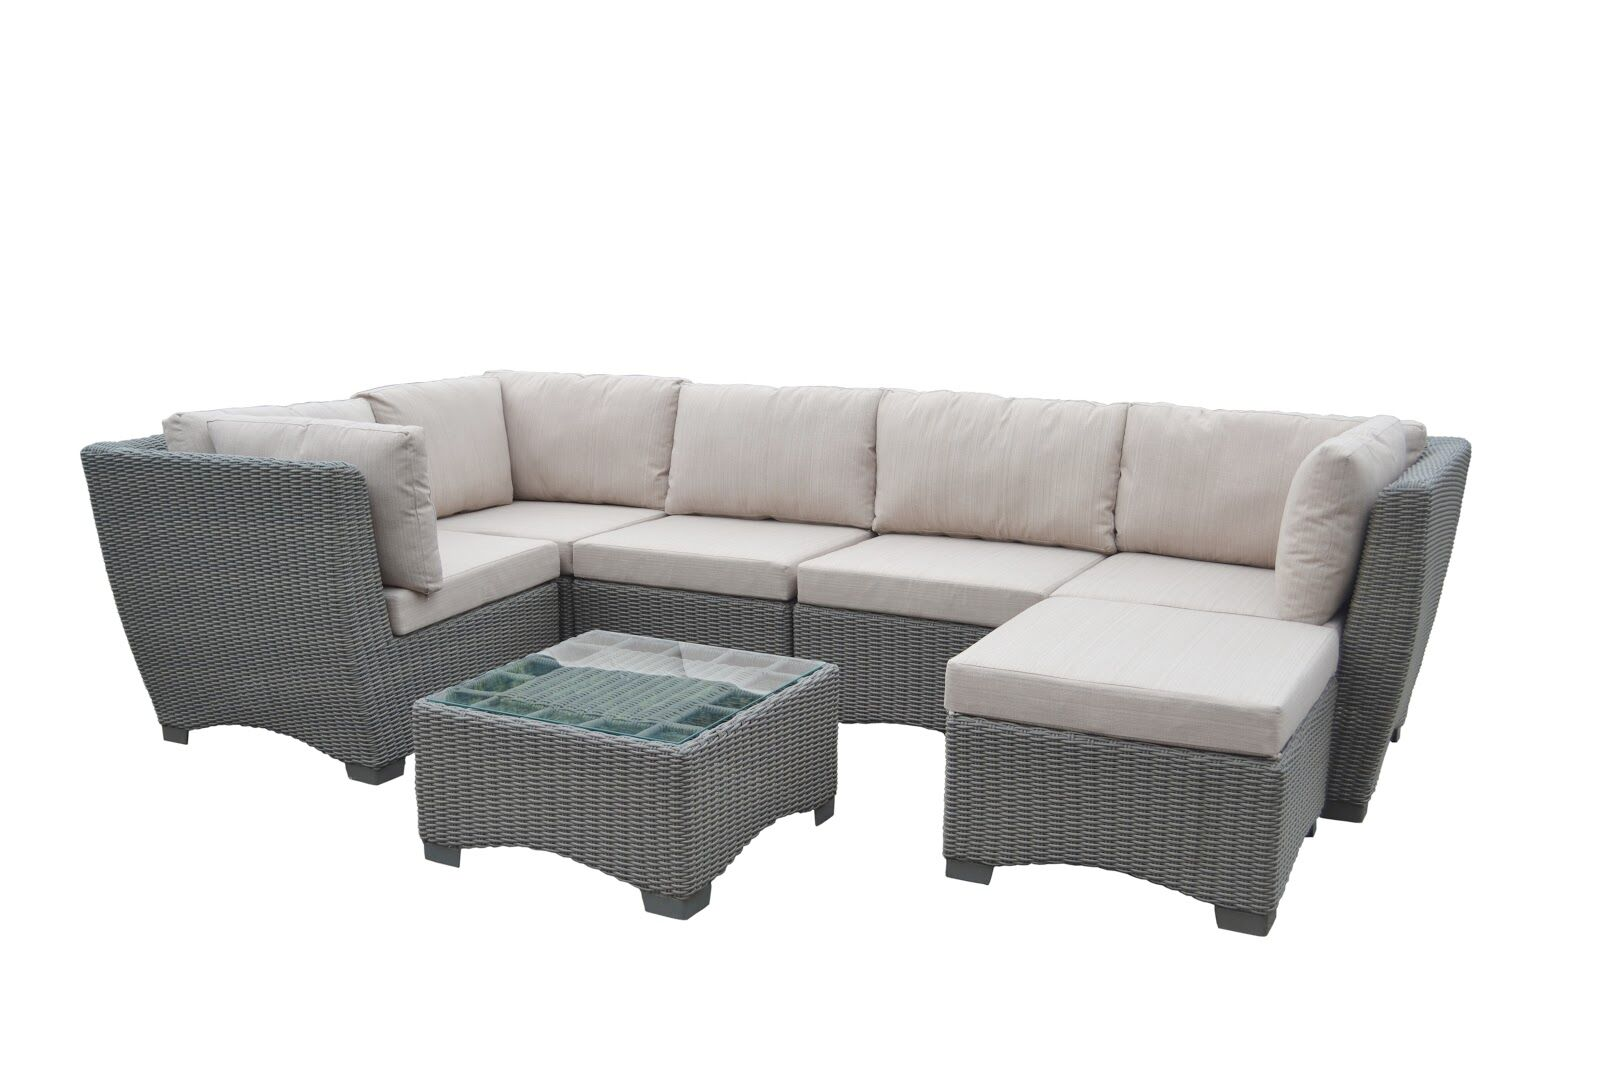 Couto Outdoor Garden 7 Piece Sectional Seating Group with Cushions